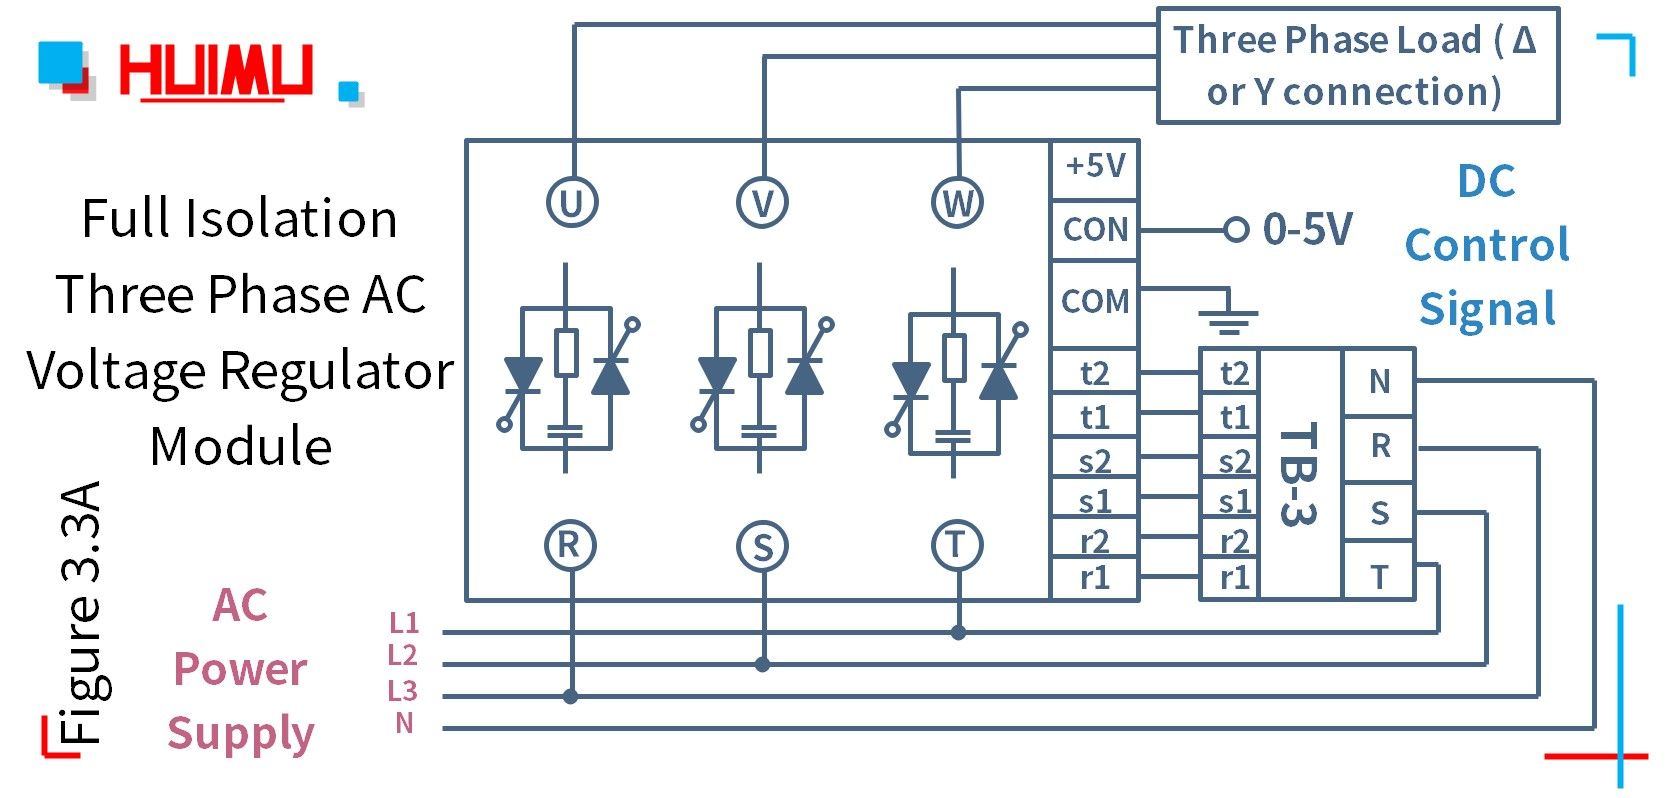 How to wire MGR mager MGR-STY380D40E (automatic control signal) full isolation three phase AC voltage regulator module? More detail via www.@huimultd.com